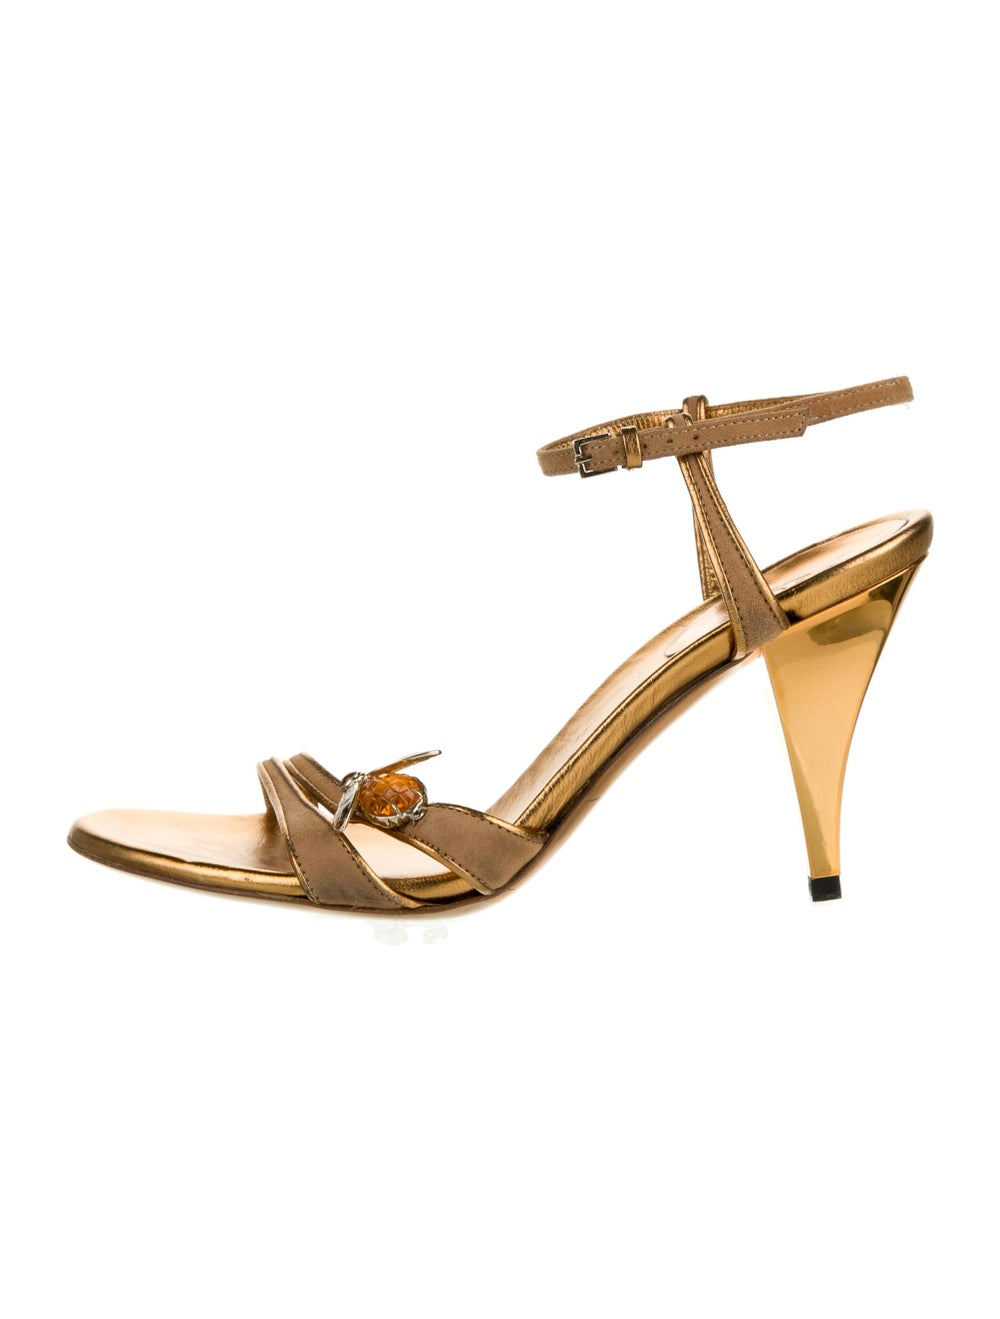 Gucci Leather Crystal Embellishments Sandals Gold - image 1